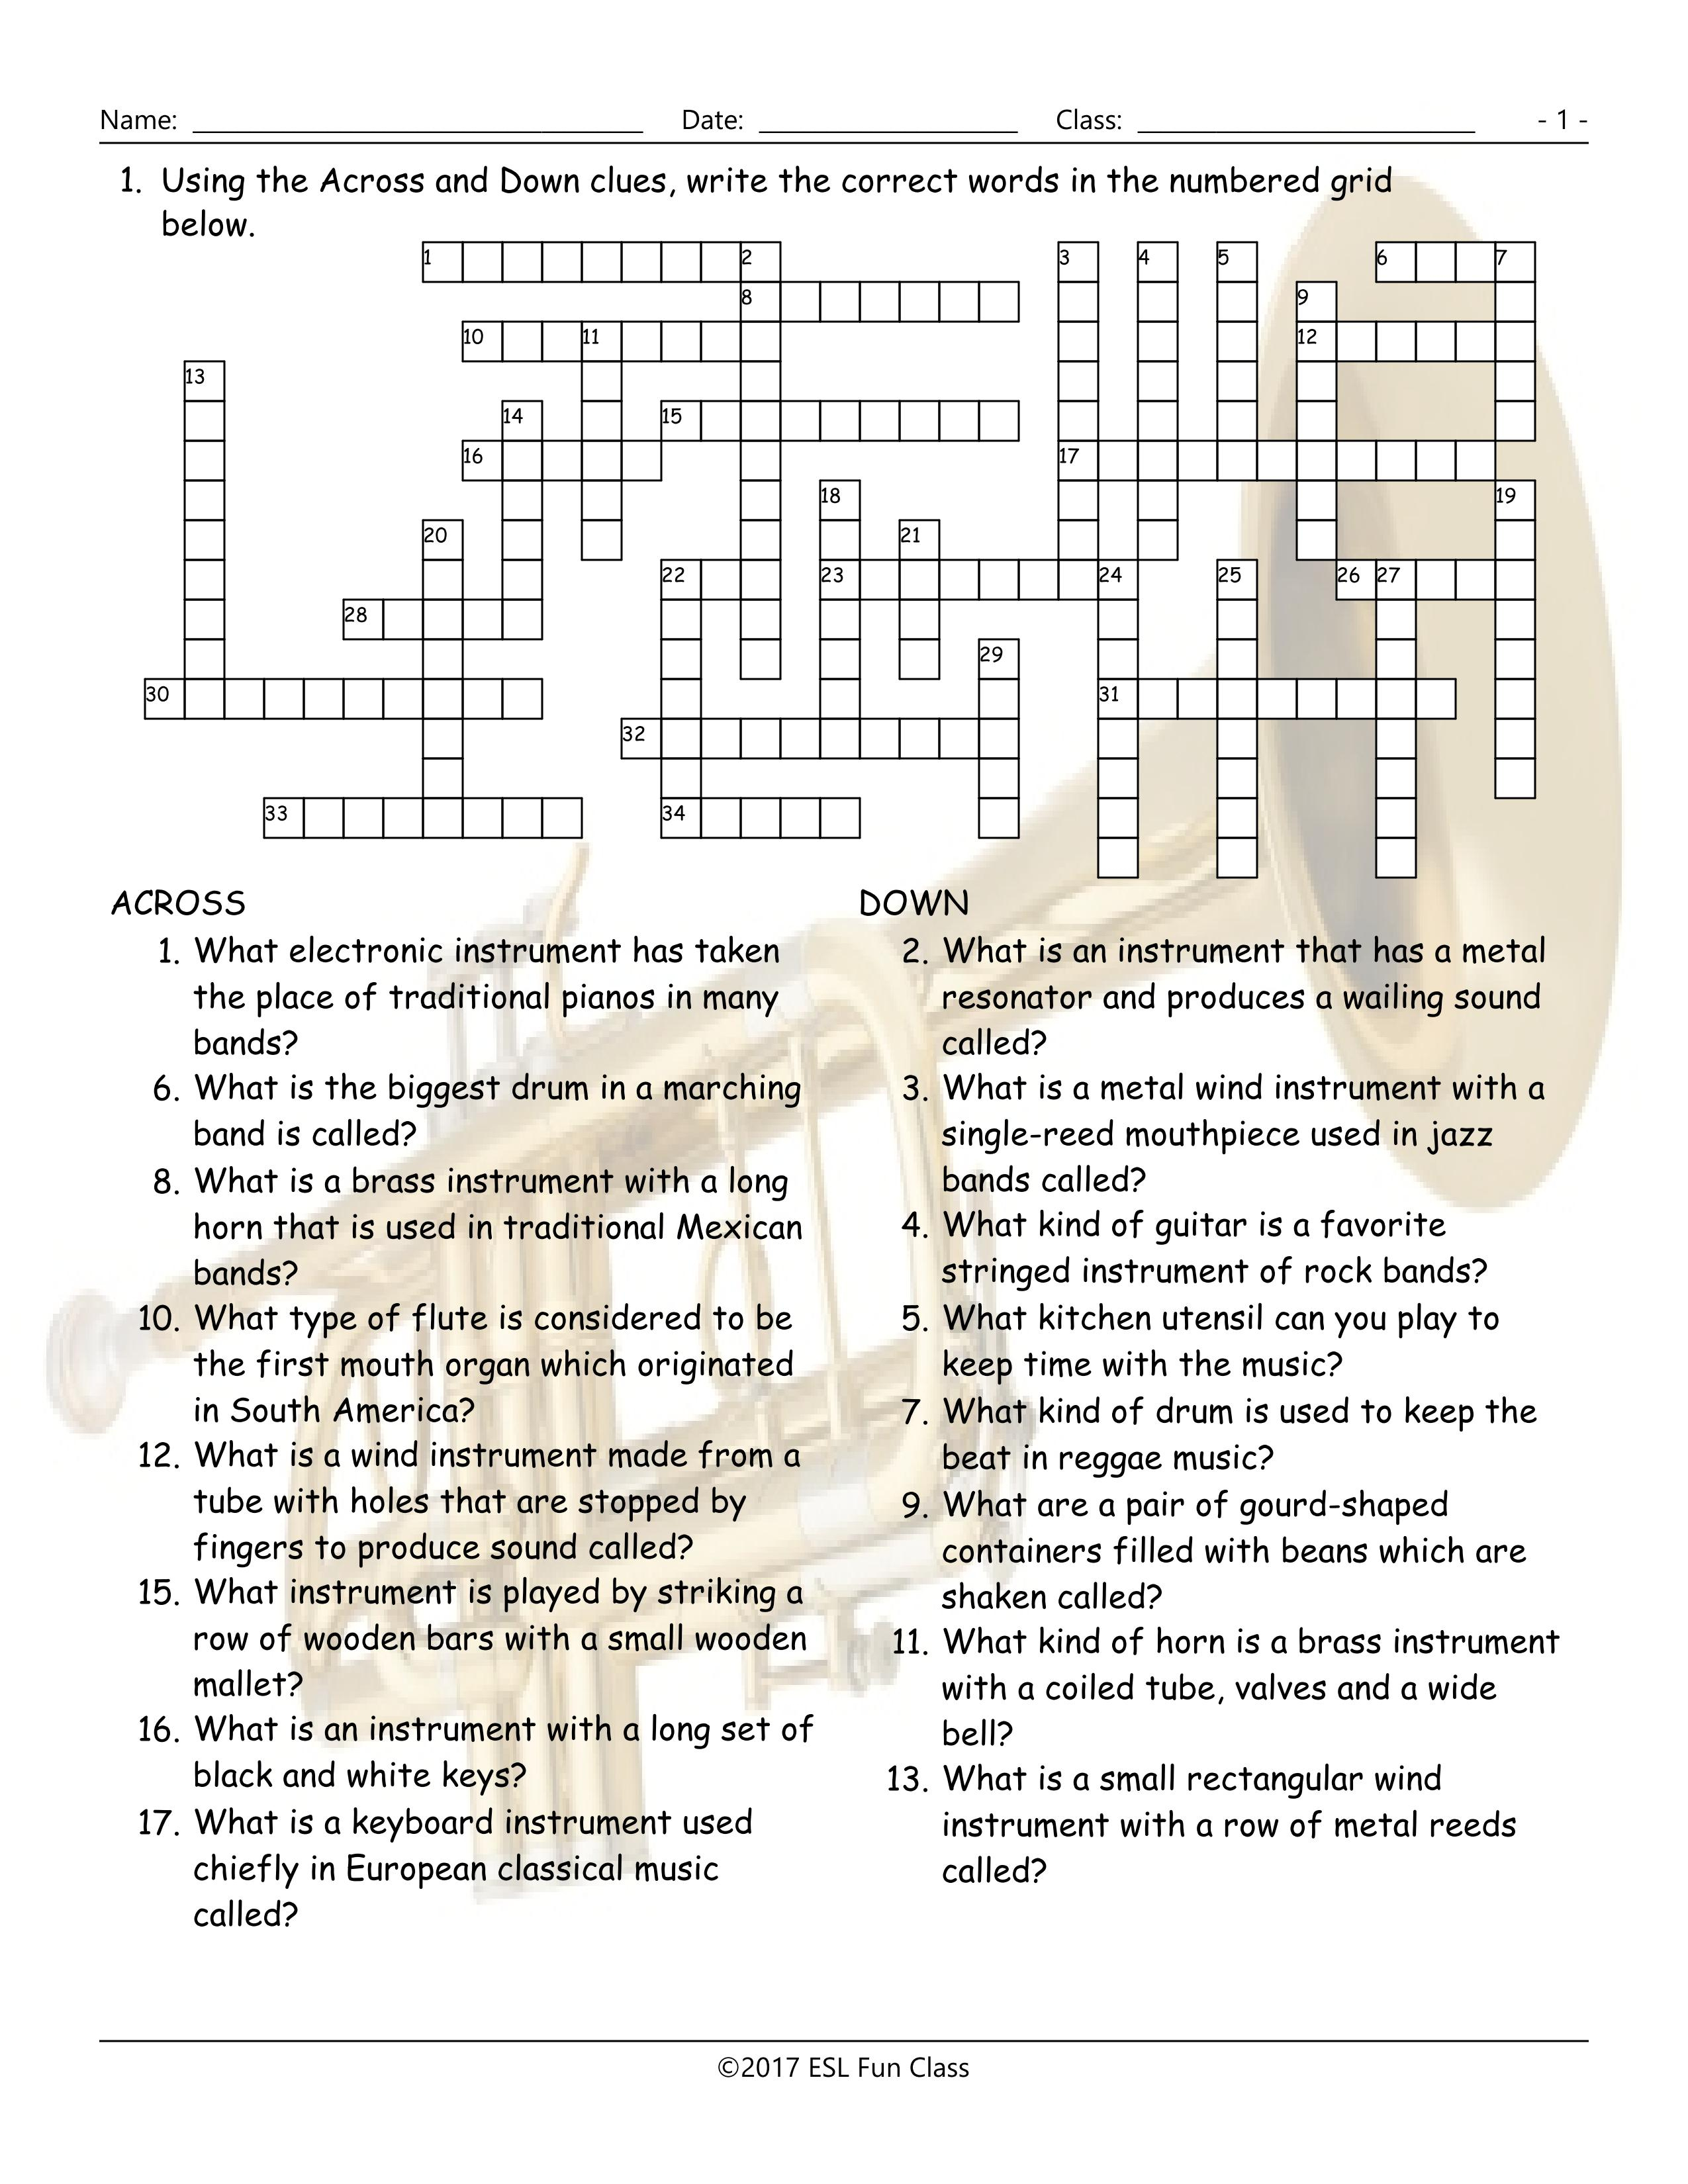 Musical Instruments Crossword Puzzle Worksheet-Esl Fun Games-Have Fun! - Printable Esl Crossword Worksheets